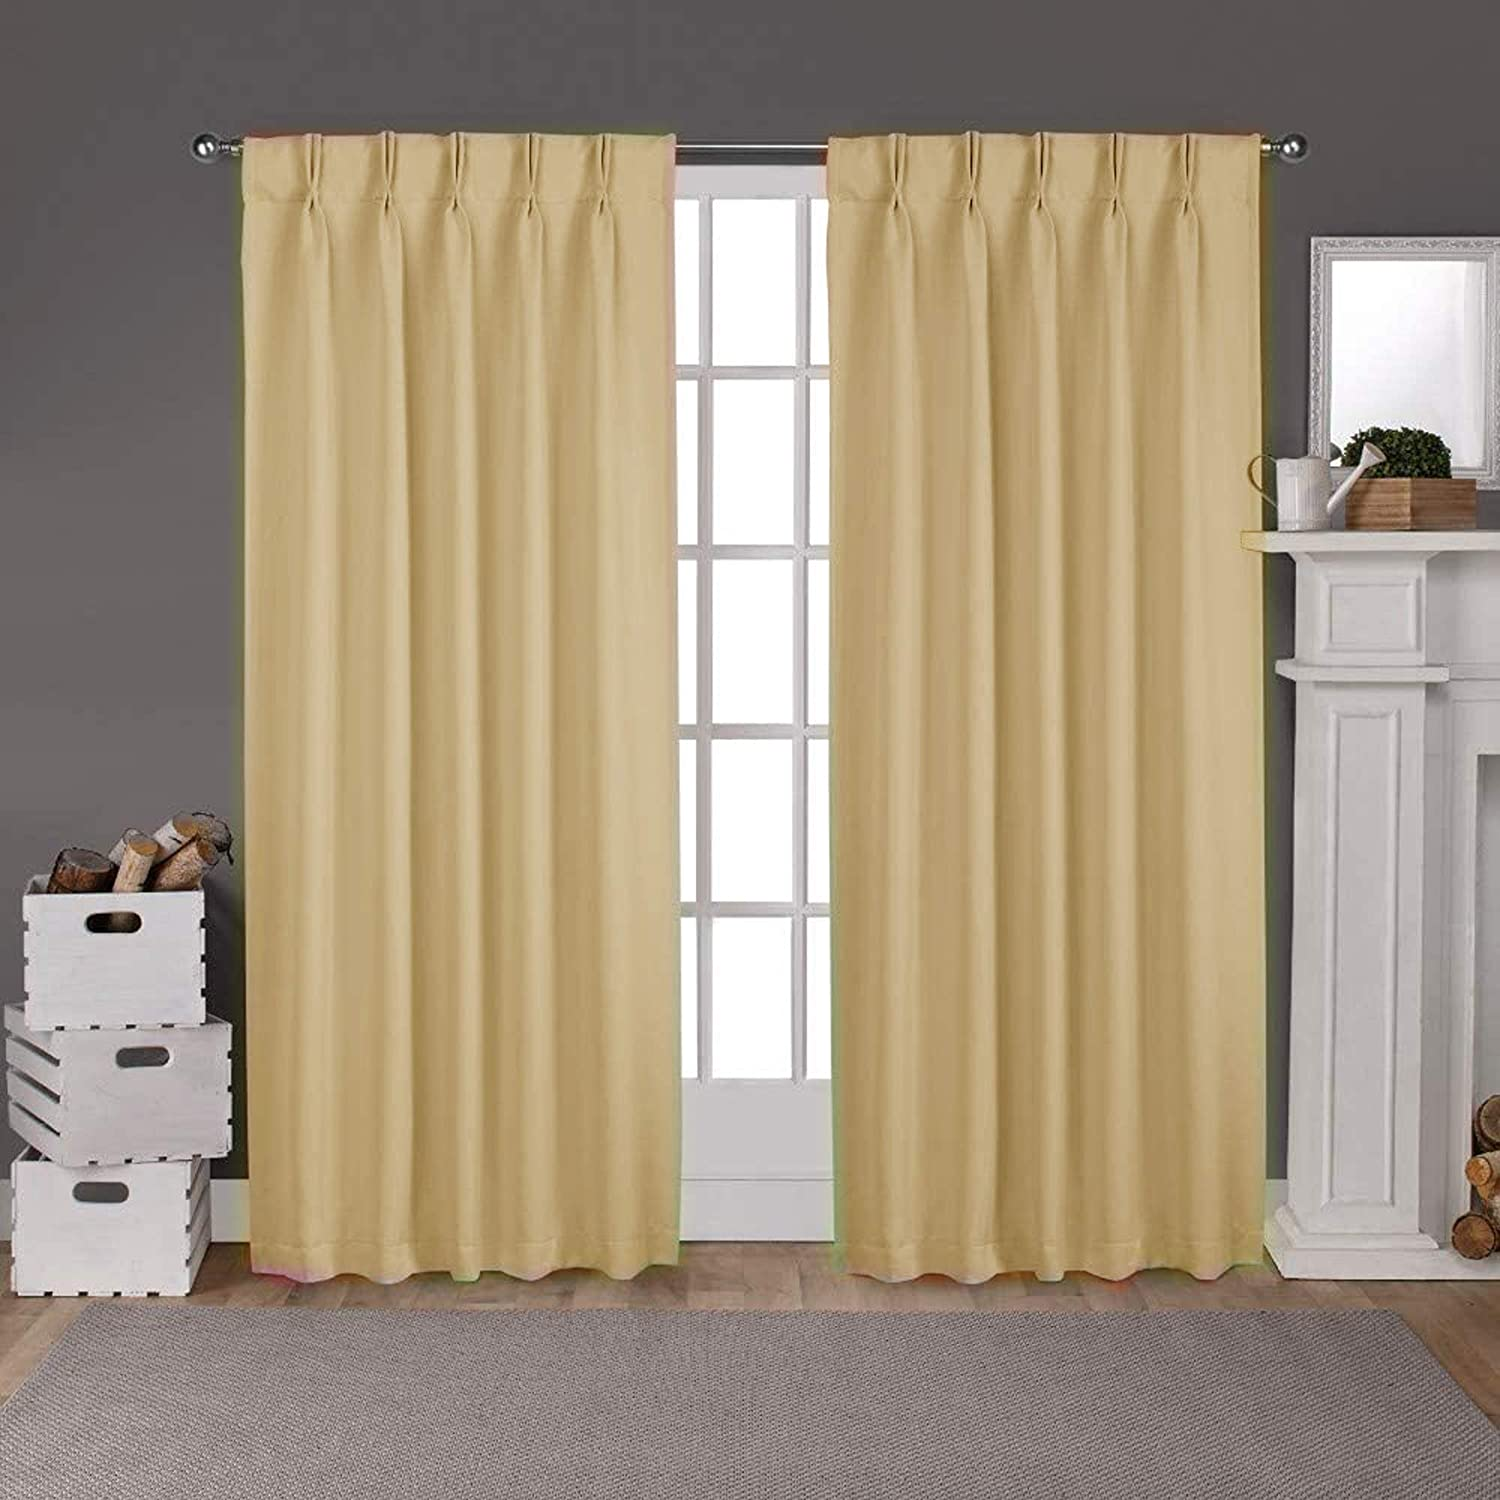 100% Polyester favorite Charlotte Mall Double Pinch Pleated Window Blackout Pane Curtain